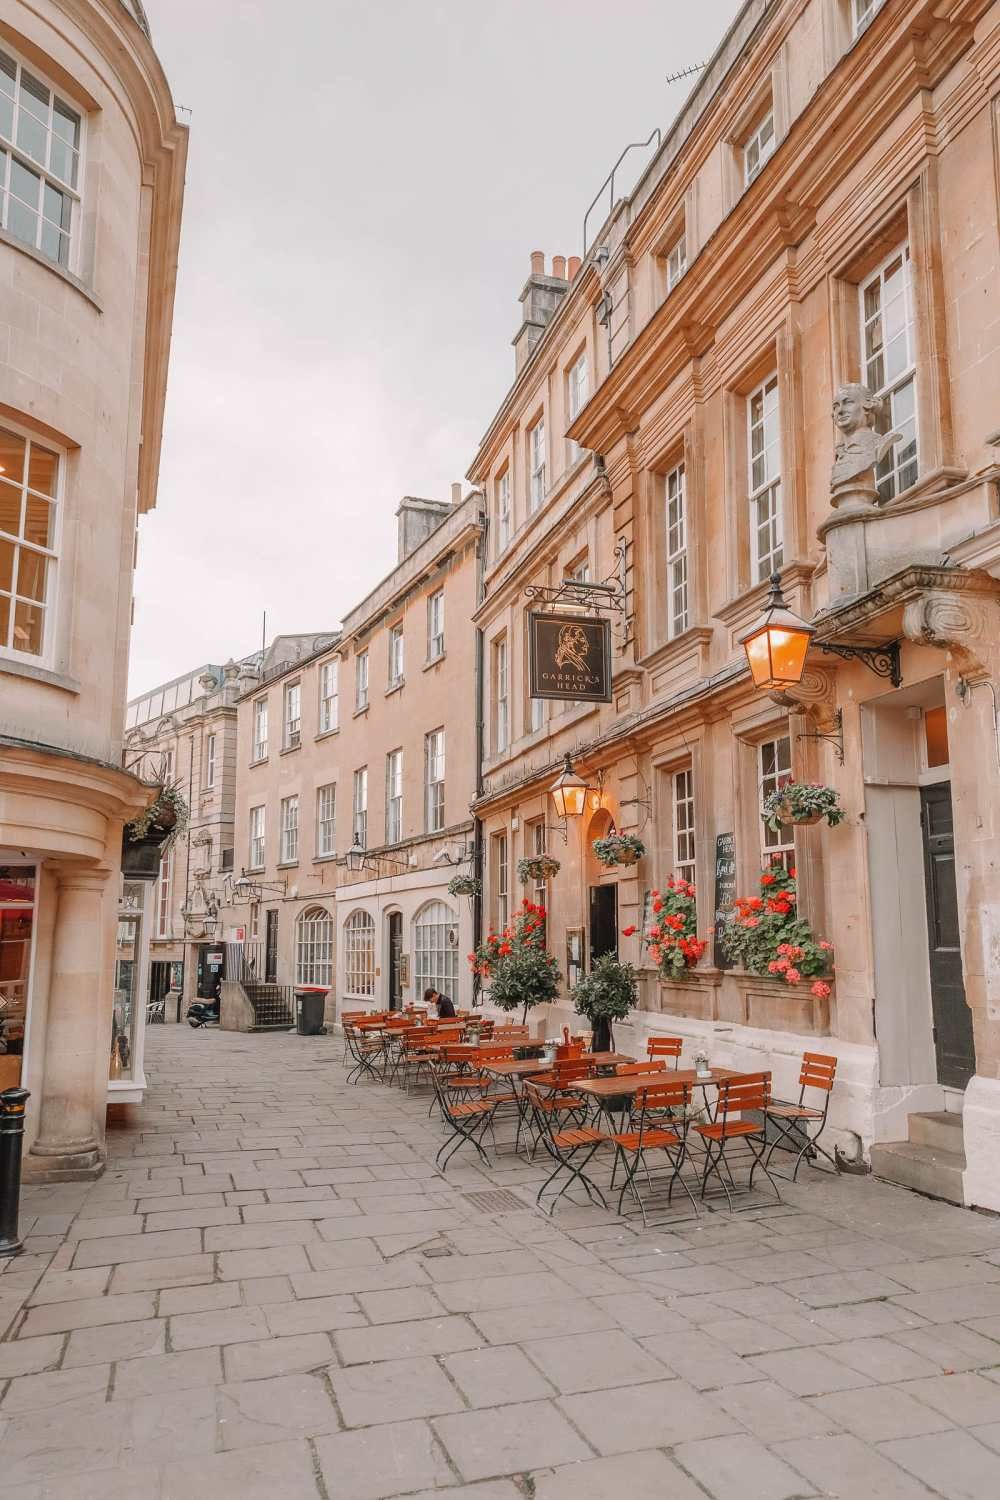 10 Very Best Things To Do In Bath, England